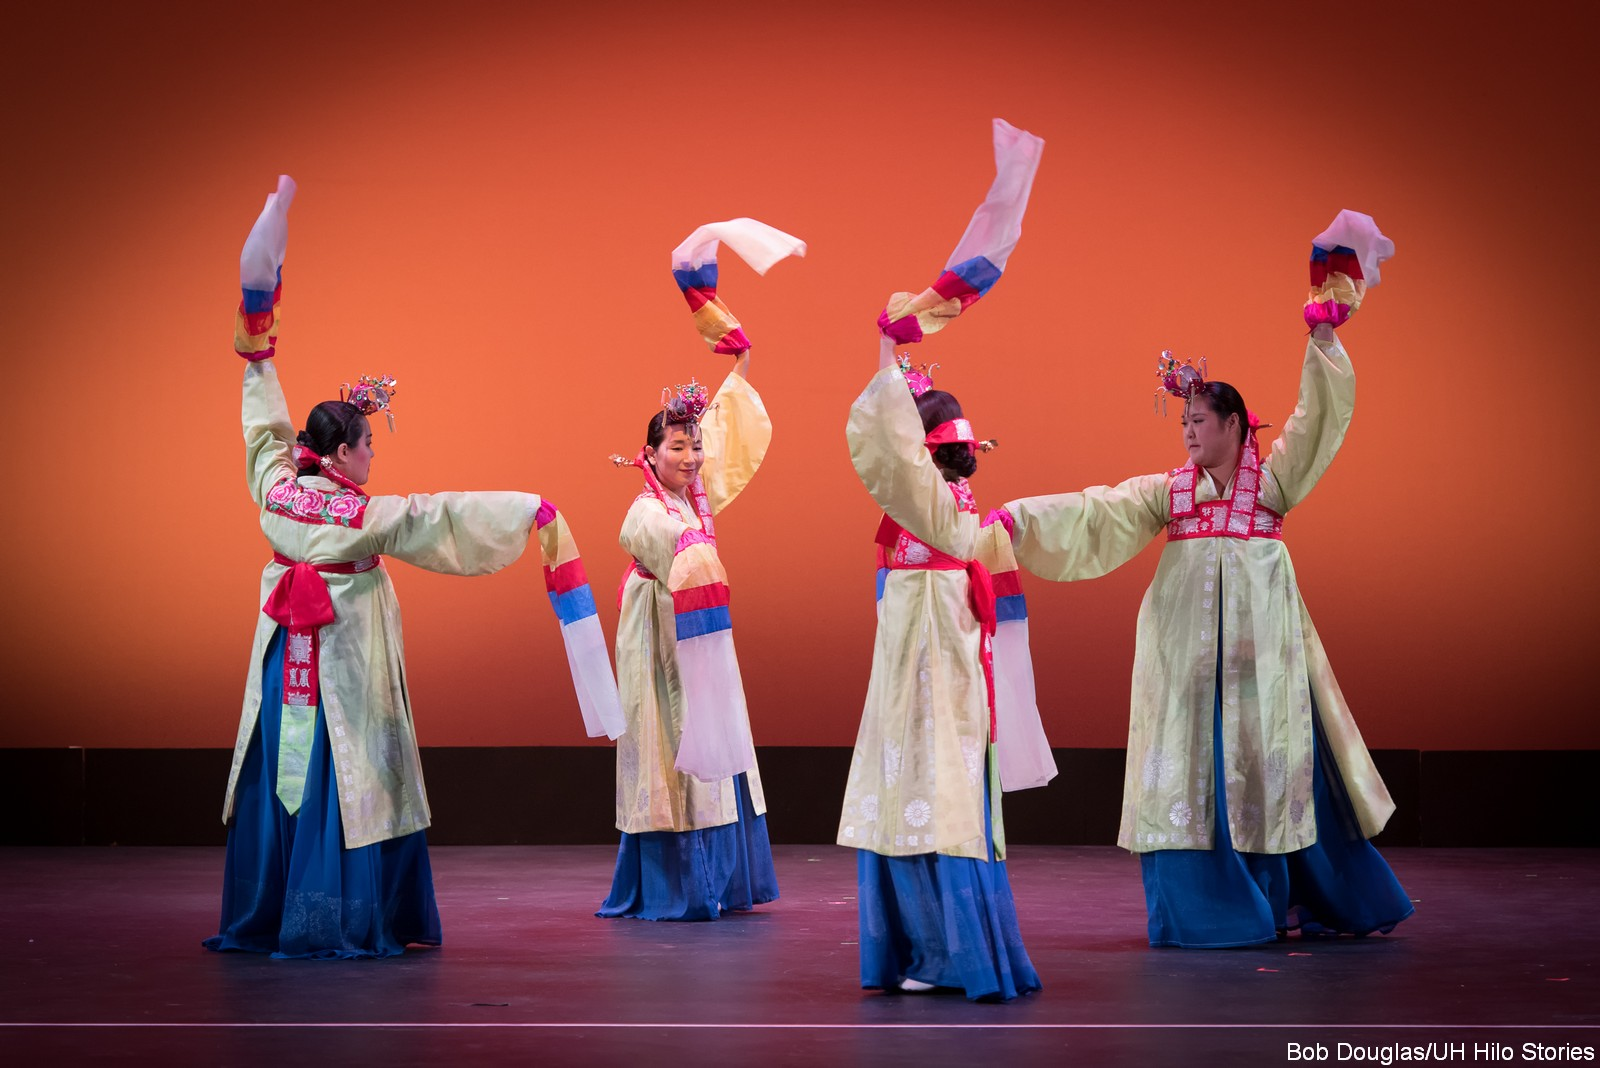 Dancers in red, blue, cream costumes, waving scarves.